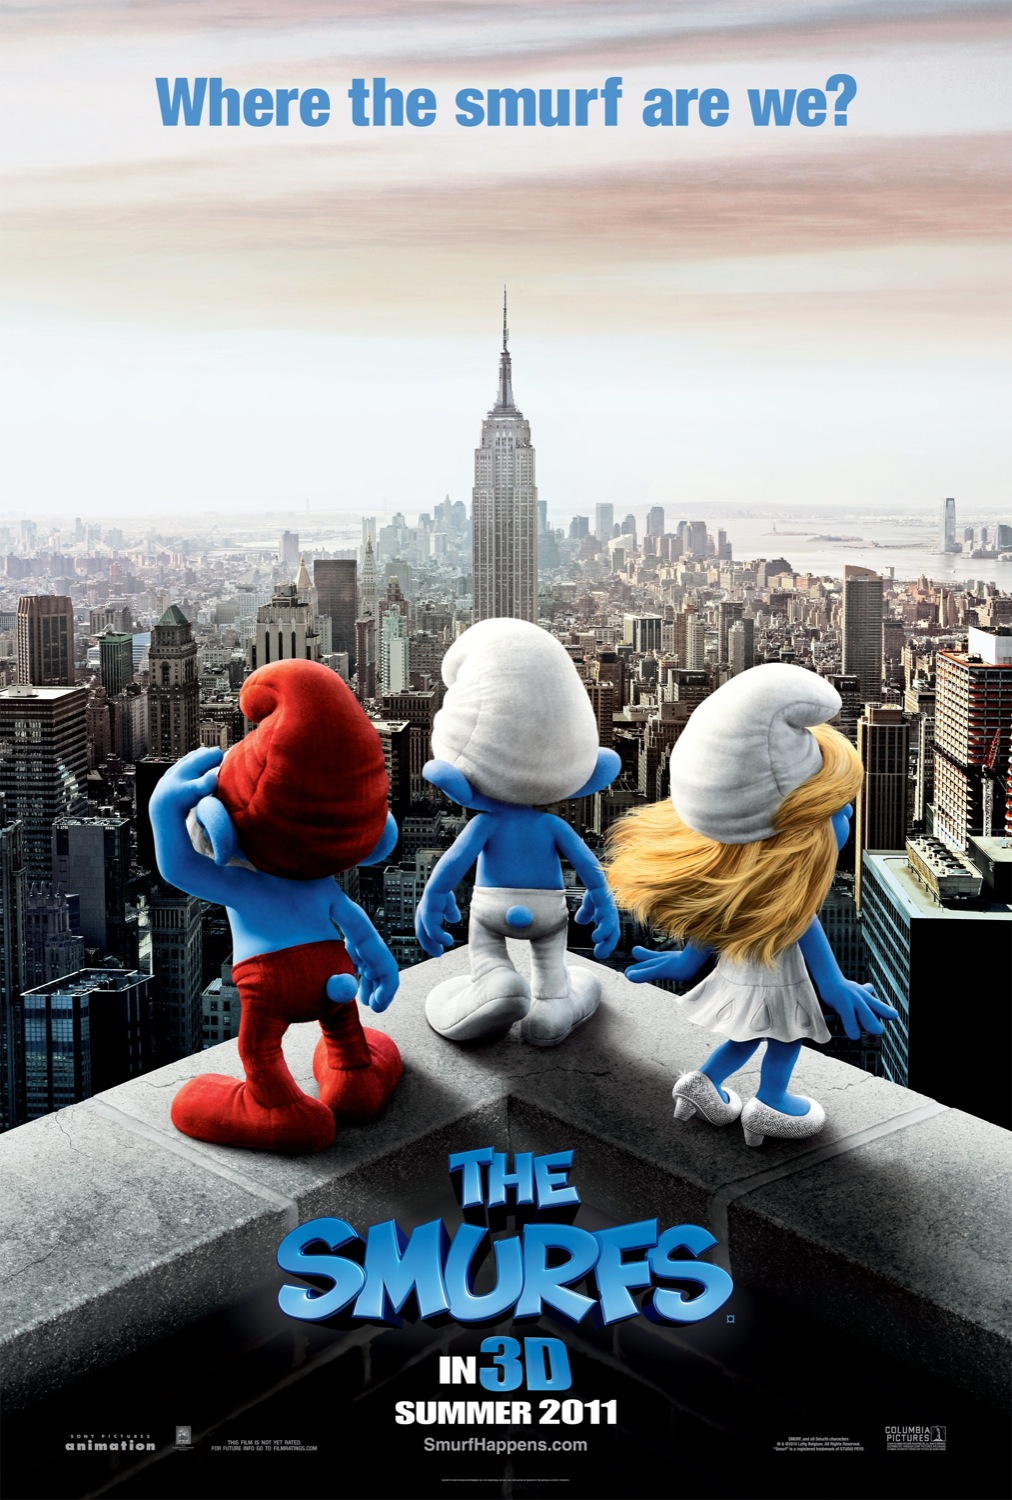 the smurfs 3d movie poster wallpapers cartoon wallpapers